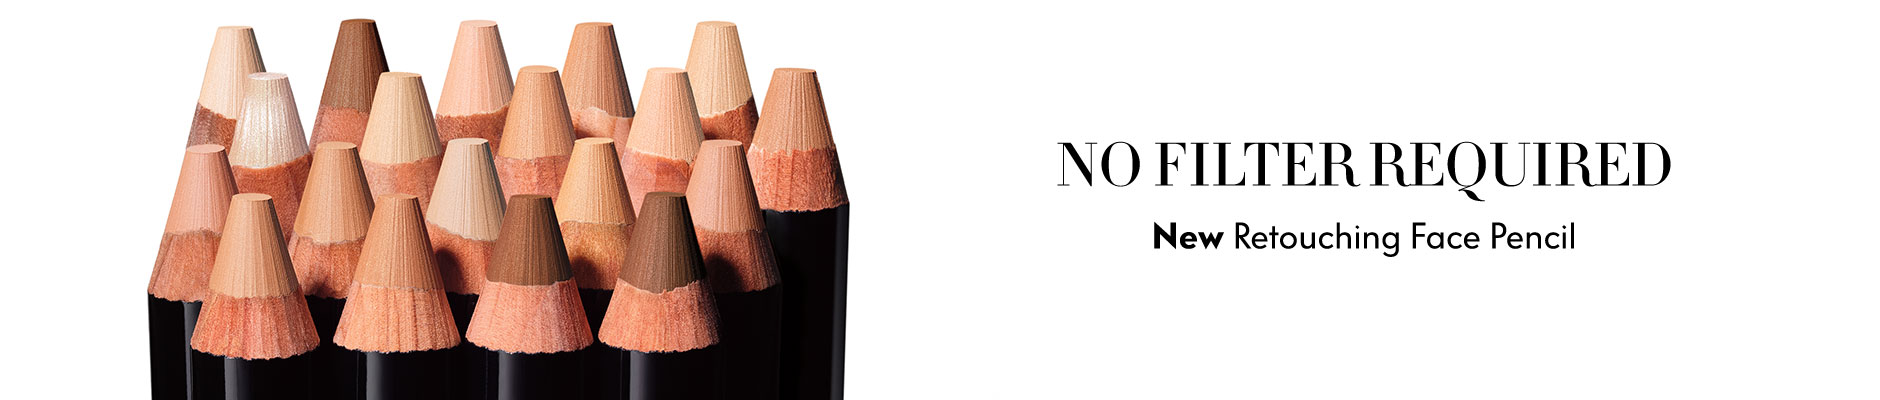 No Filter Required - New Retouching Face Pencil